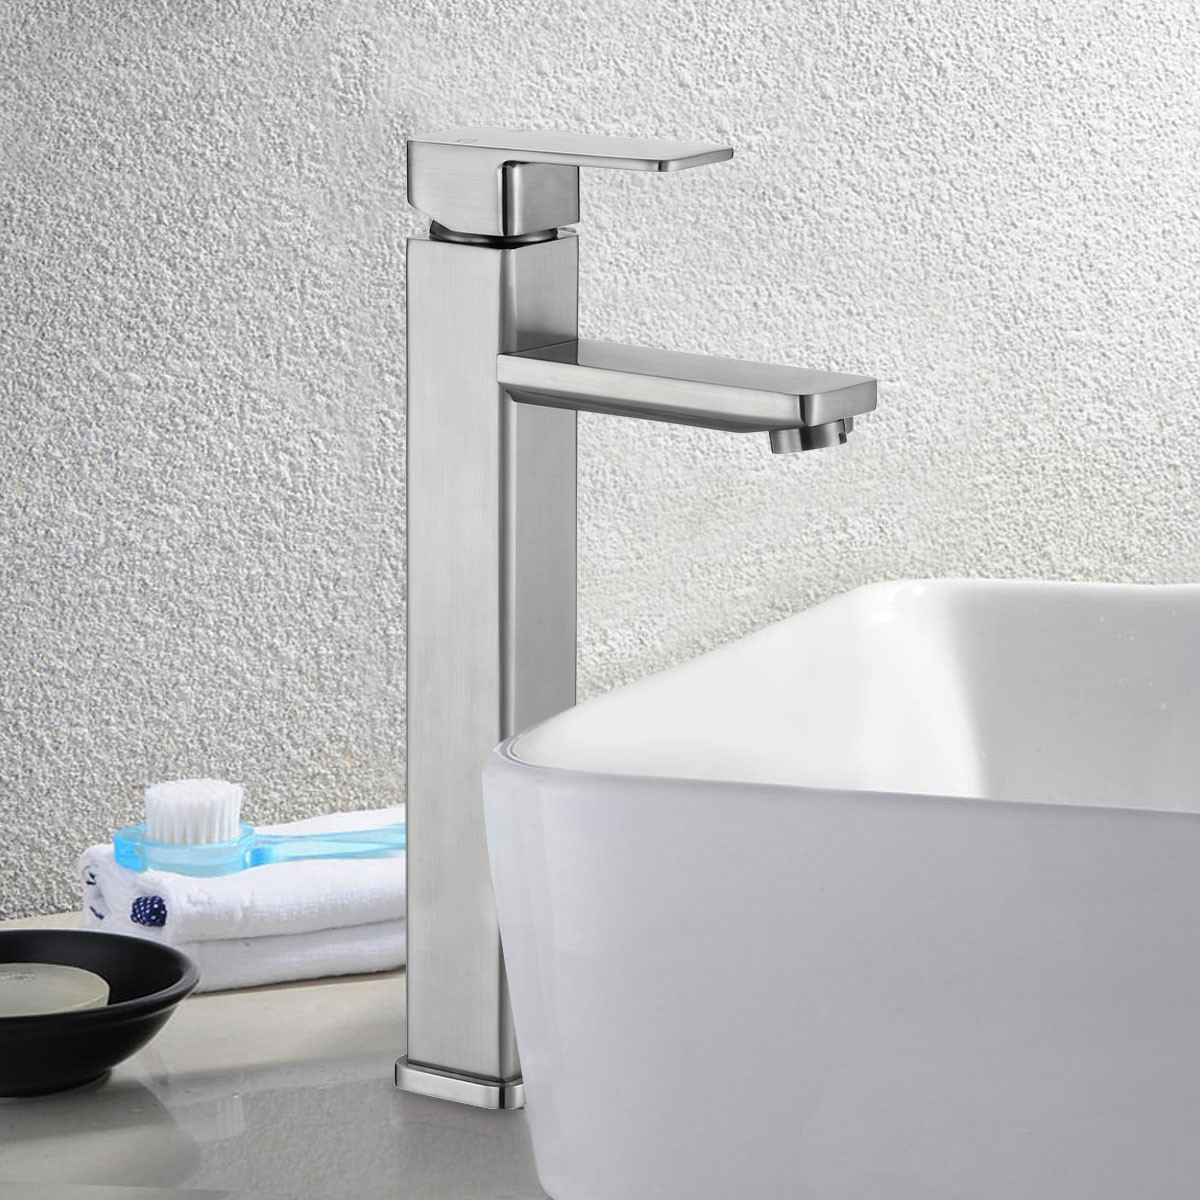 Basin&Sink Faucet - Brass in Brushed Nickel (81H36-BN-012-T)